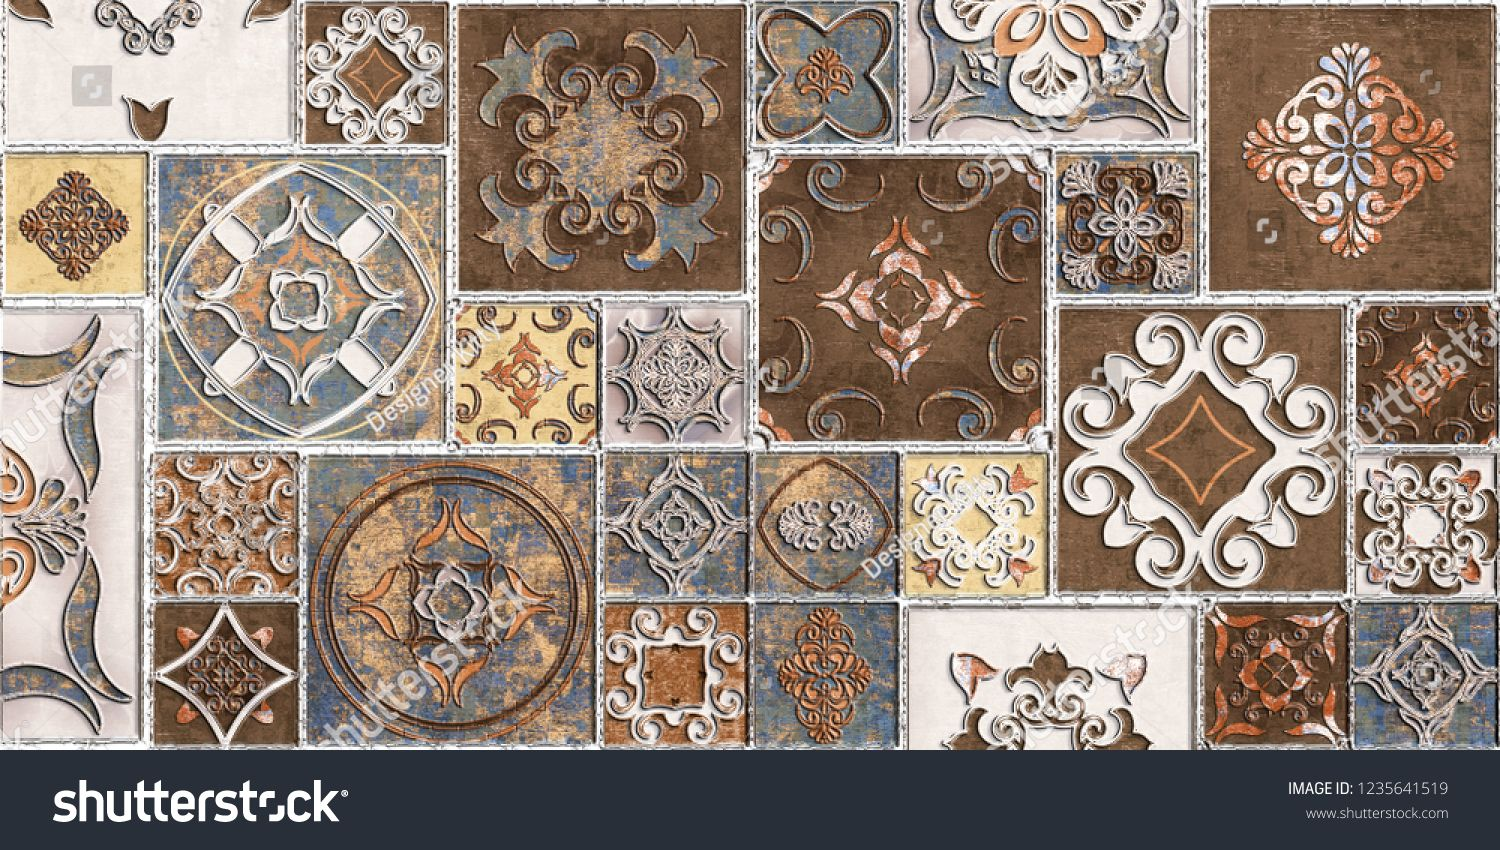 Random Wall Tiles Design Or Brown Colored Wall Tiles Decor For Home Or Wall Decor On Brown Beige Marble Design Wall Tiles Design Decorative Tile Beige Marble